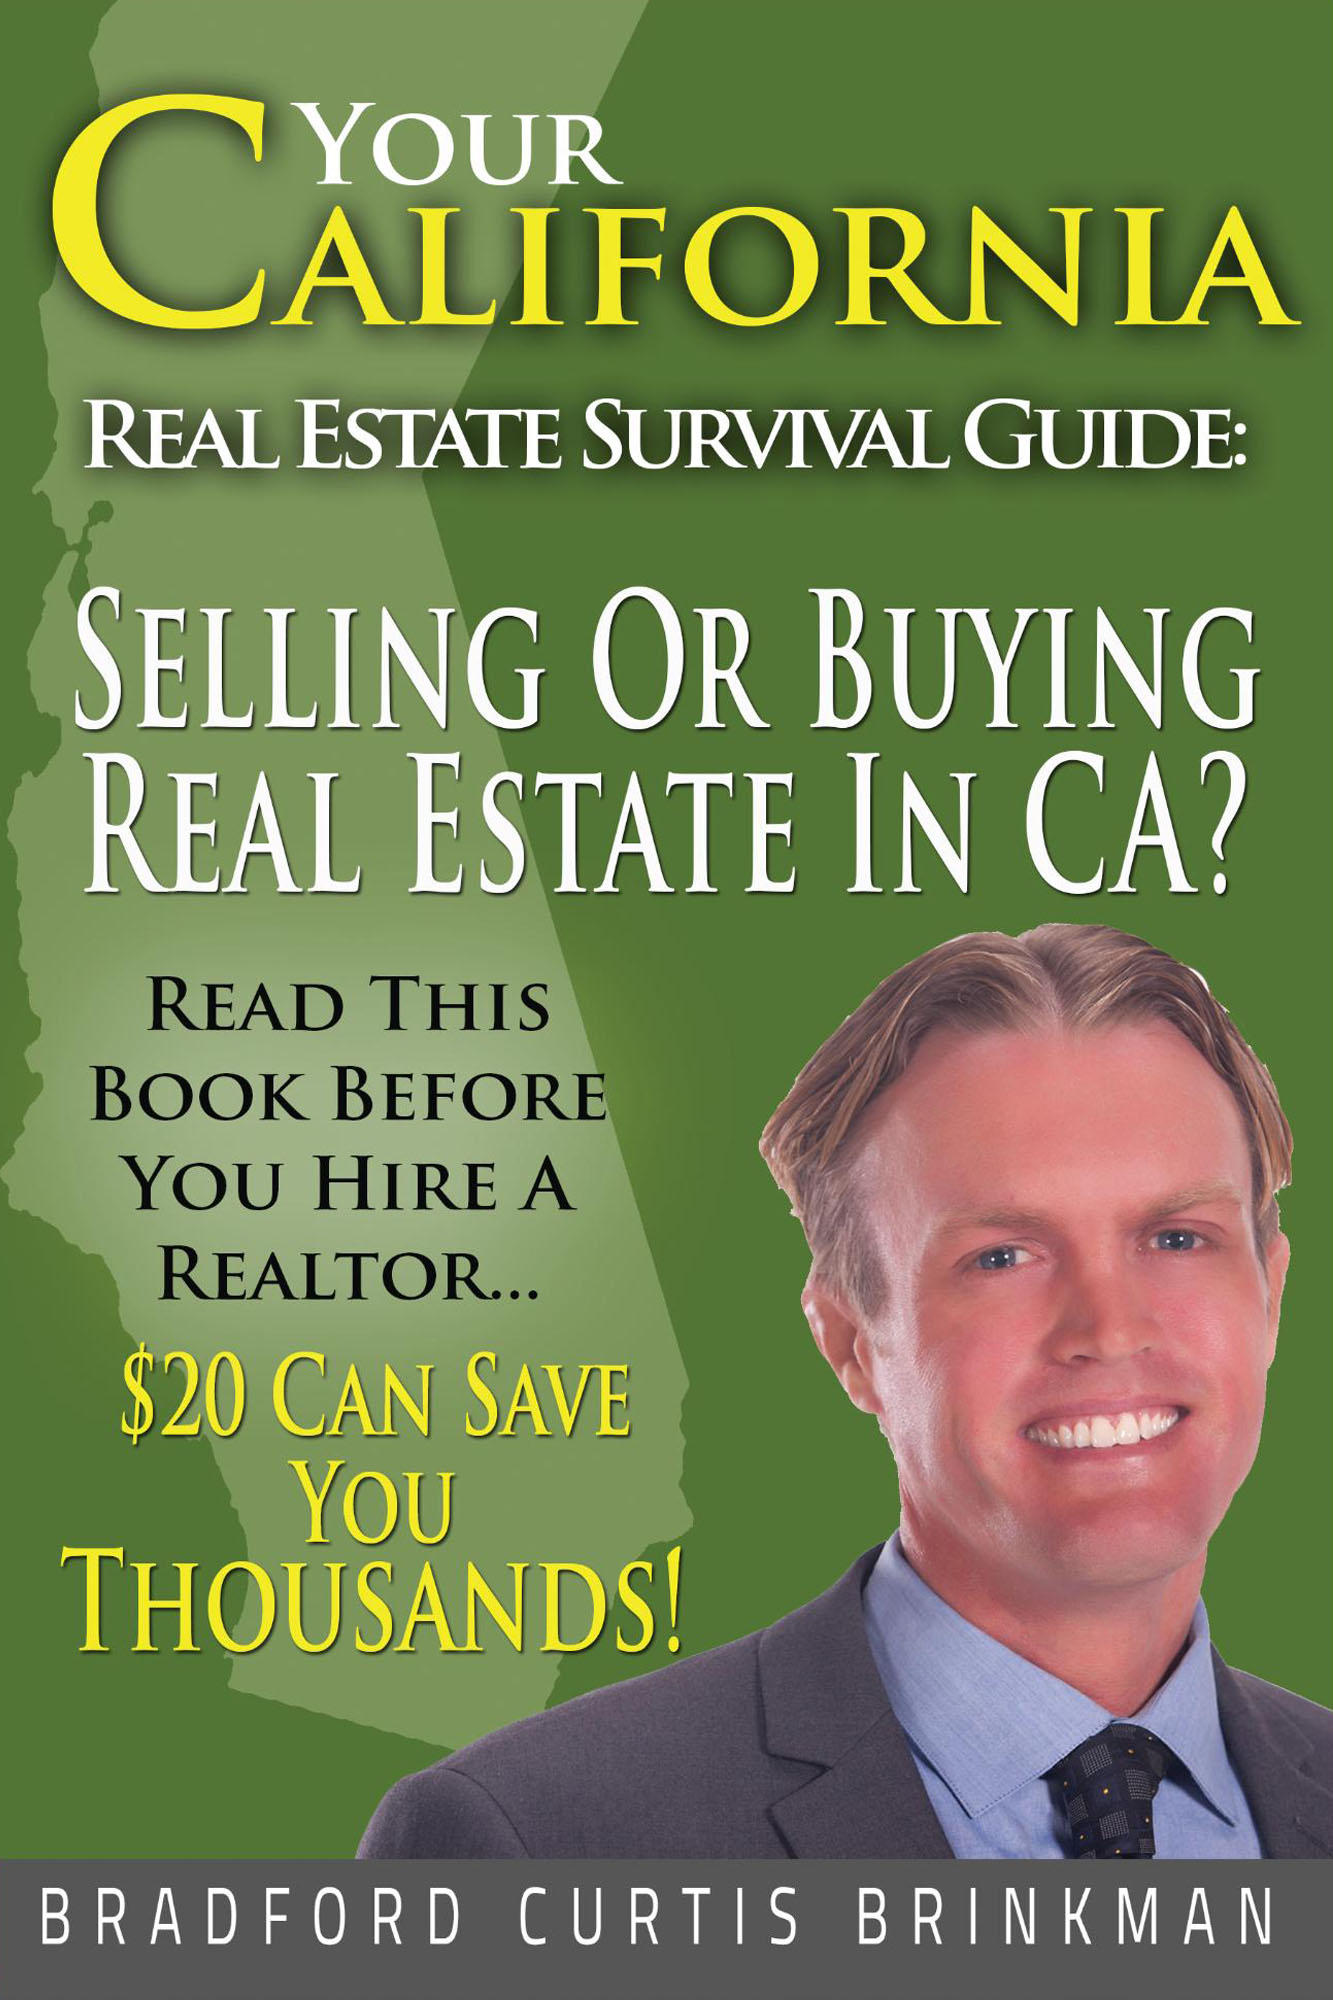 The California Real Estate Survival Guide